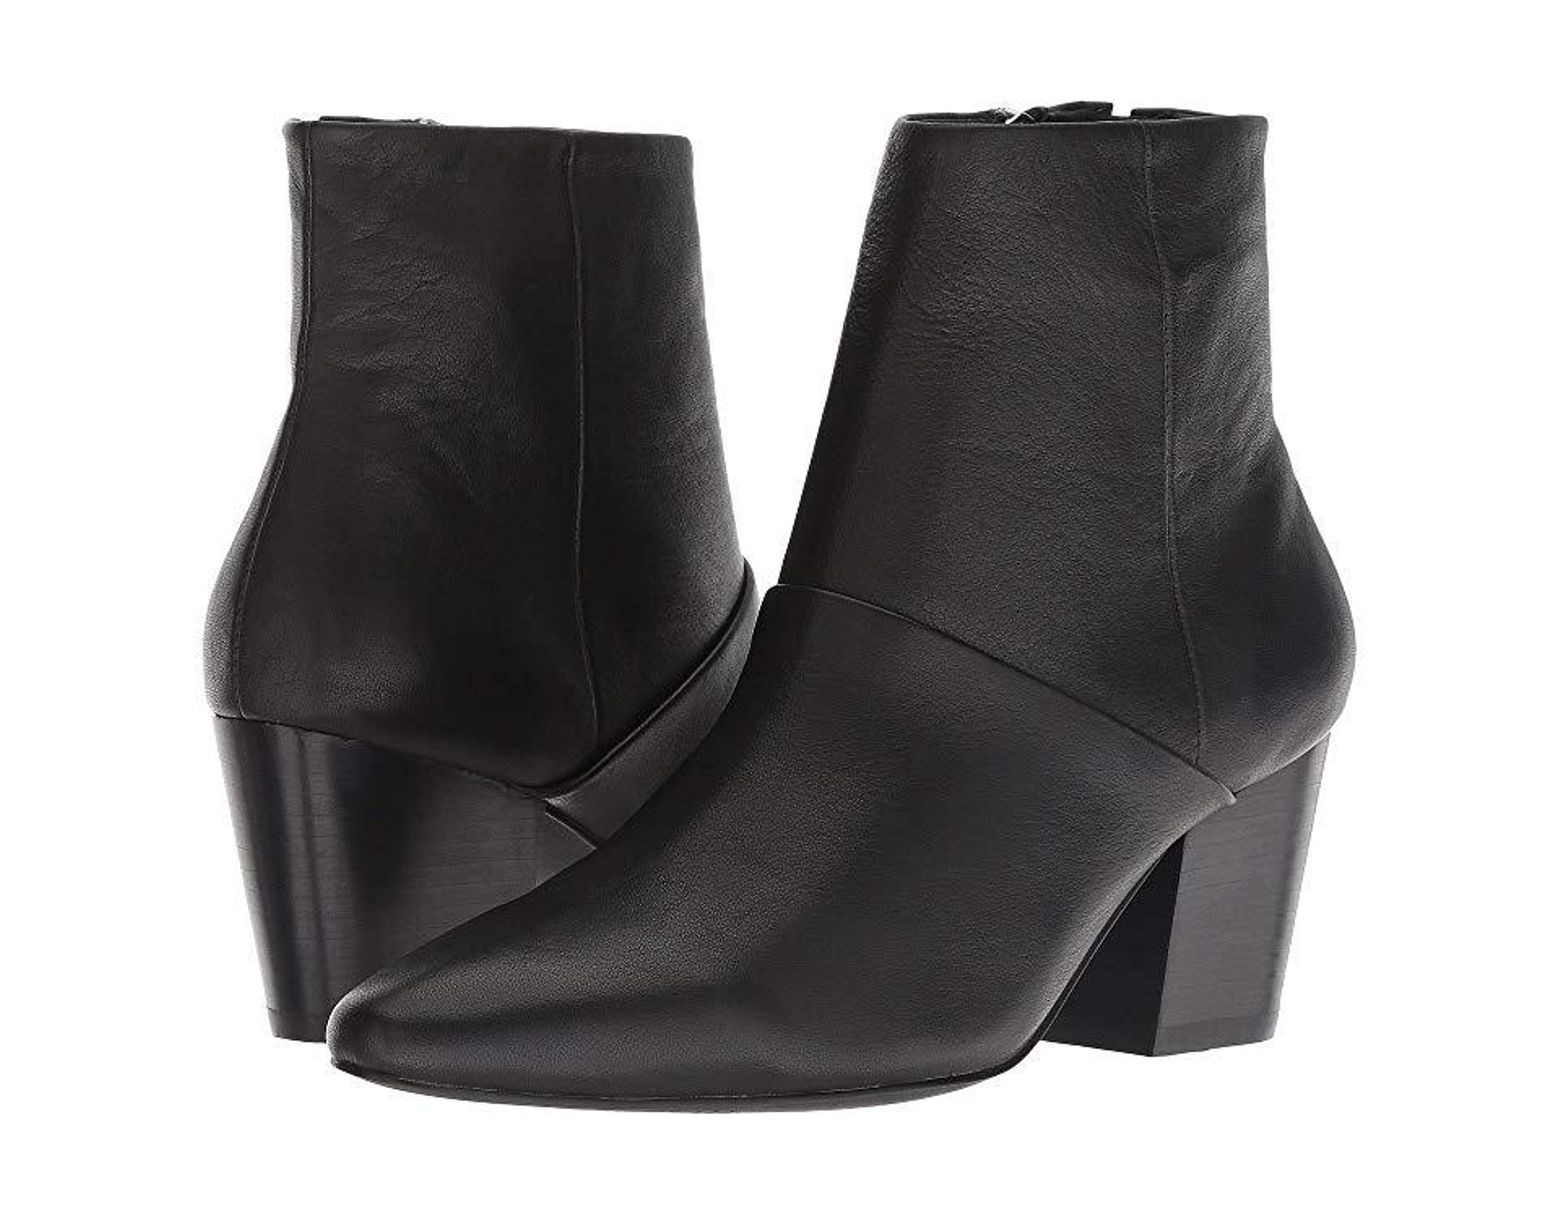 a684d4c6c19a Sol Sana Chrissy Boot (black) Boots in Black - Save 50% - Lyst